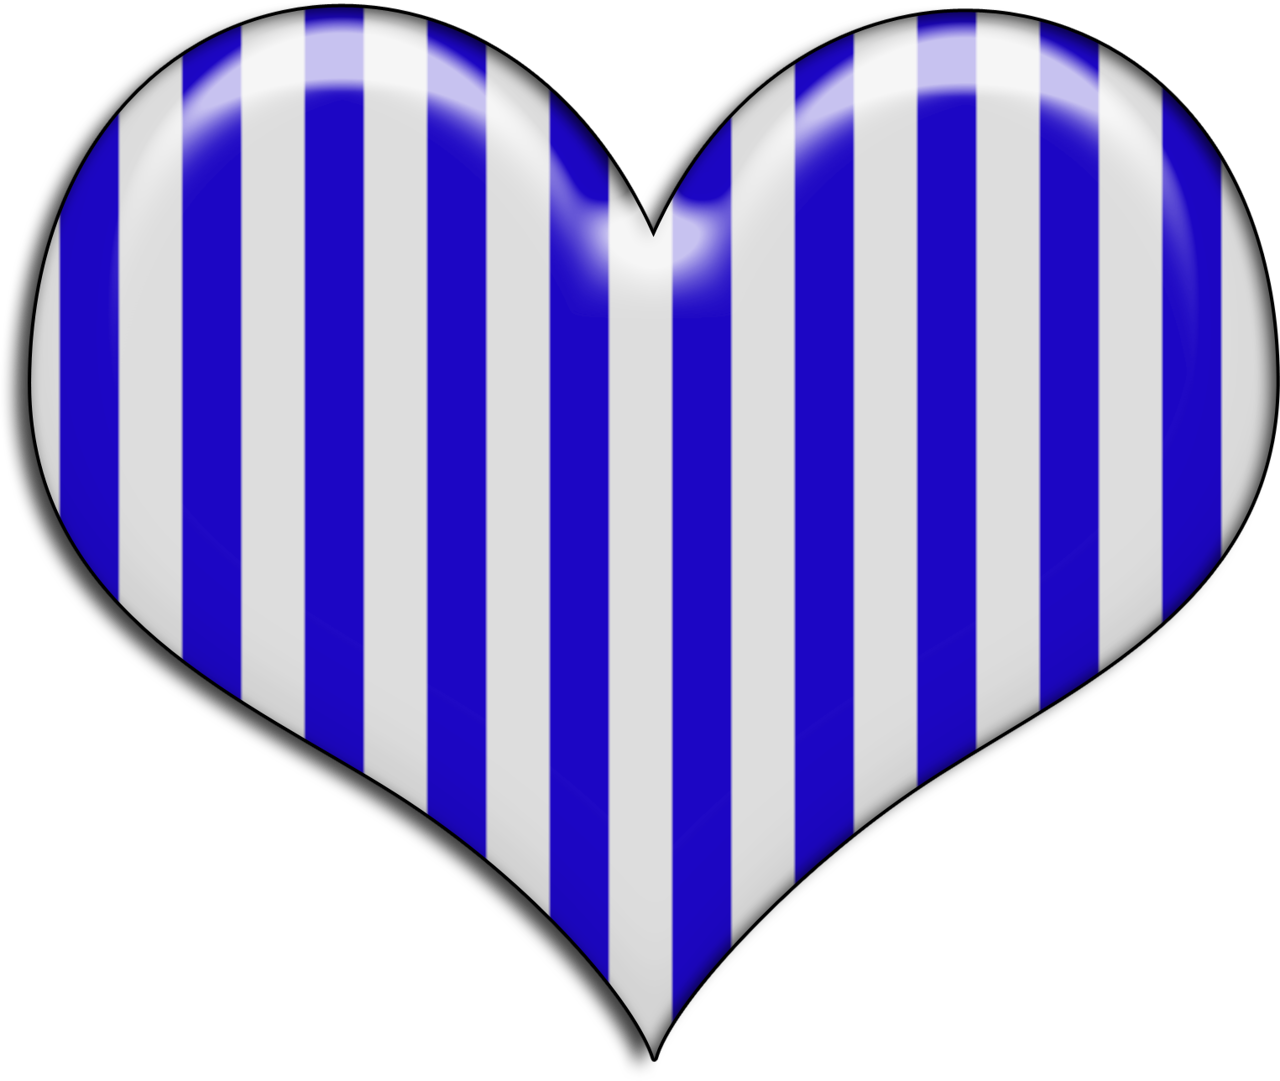 small resolution of a blue and white striped heart